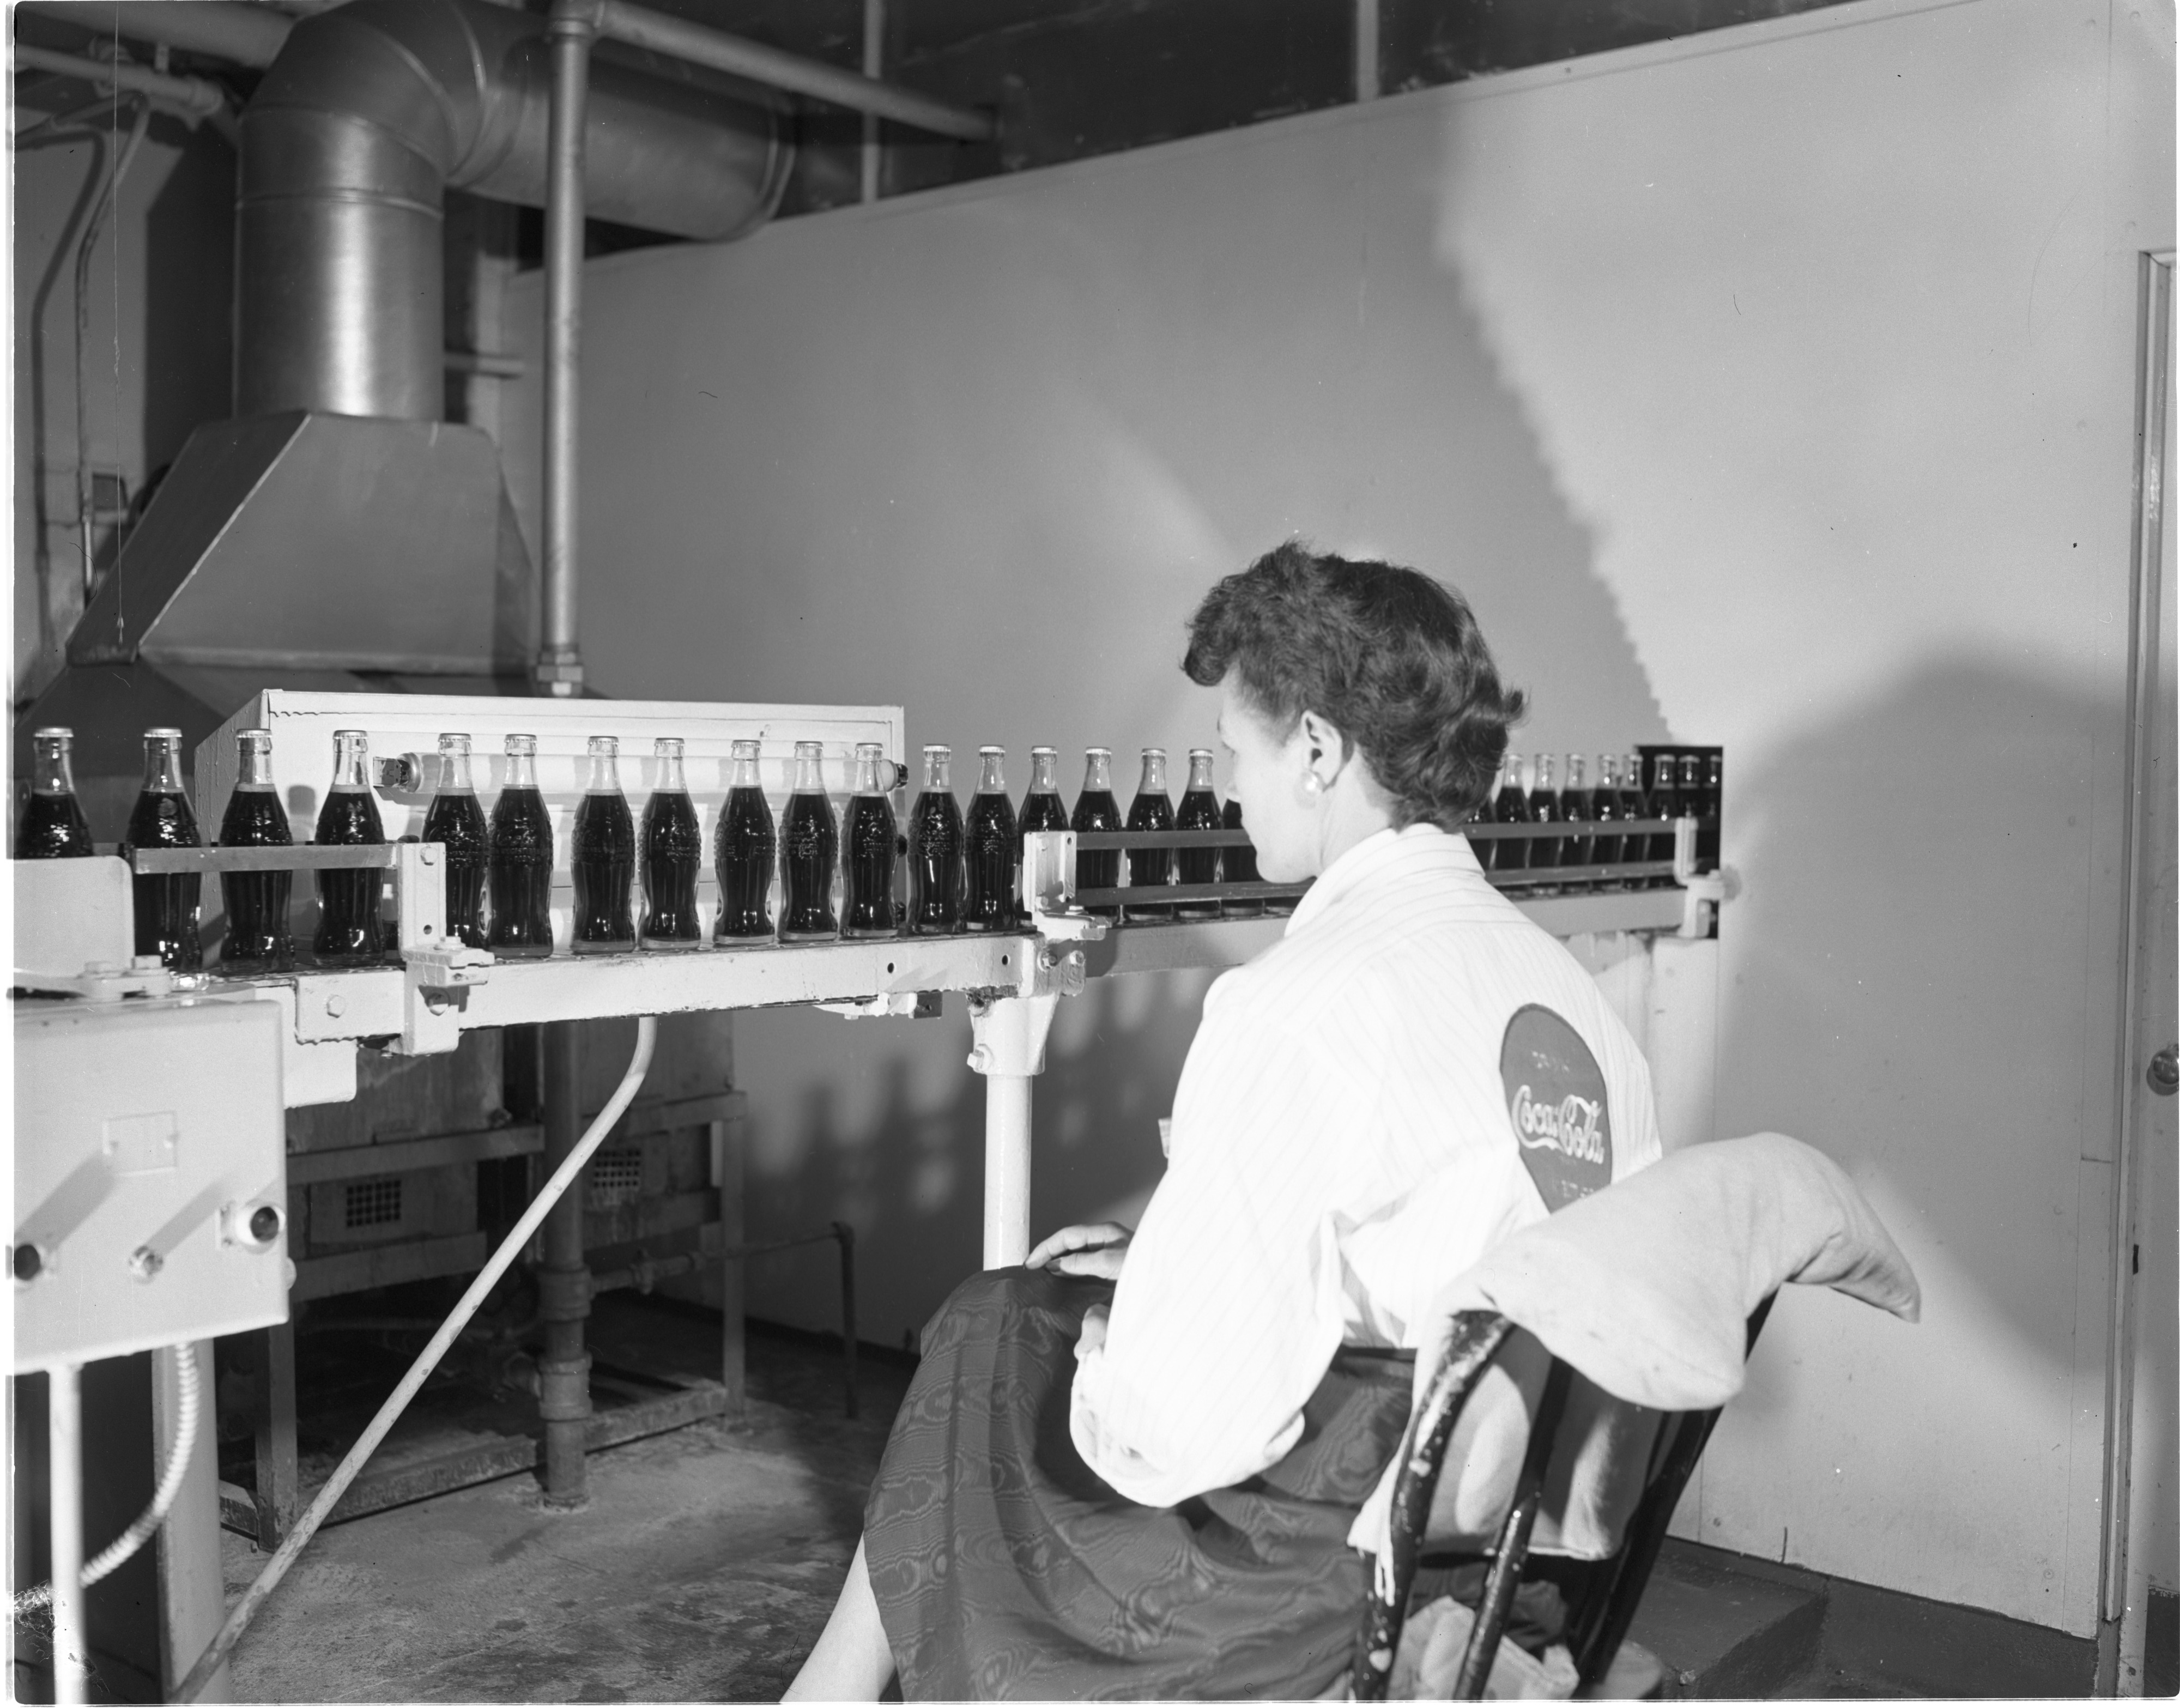 Freshly Bottled Coca-Cola Is Inspected At The Kleis Beverage Co., January 1956 image